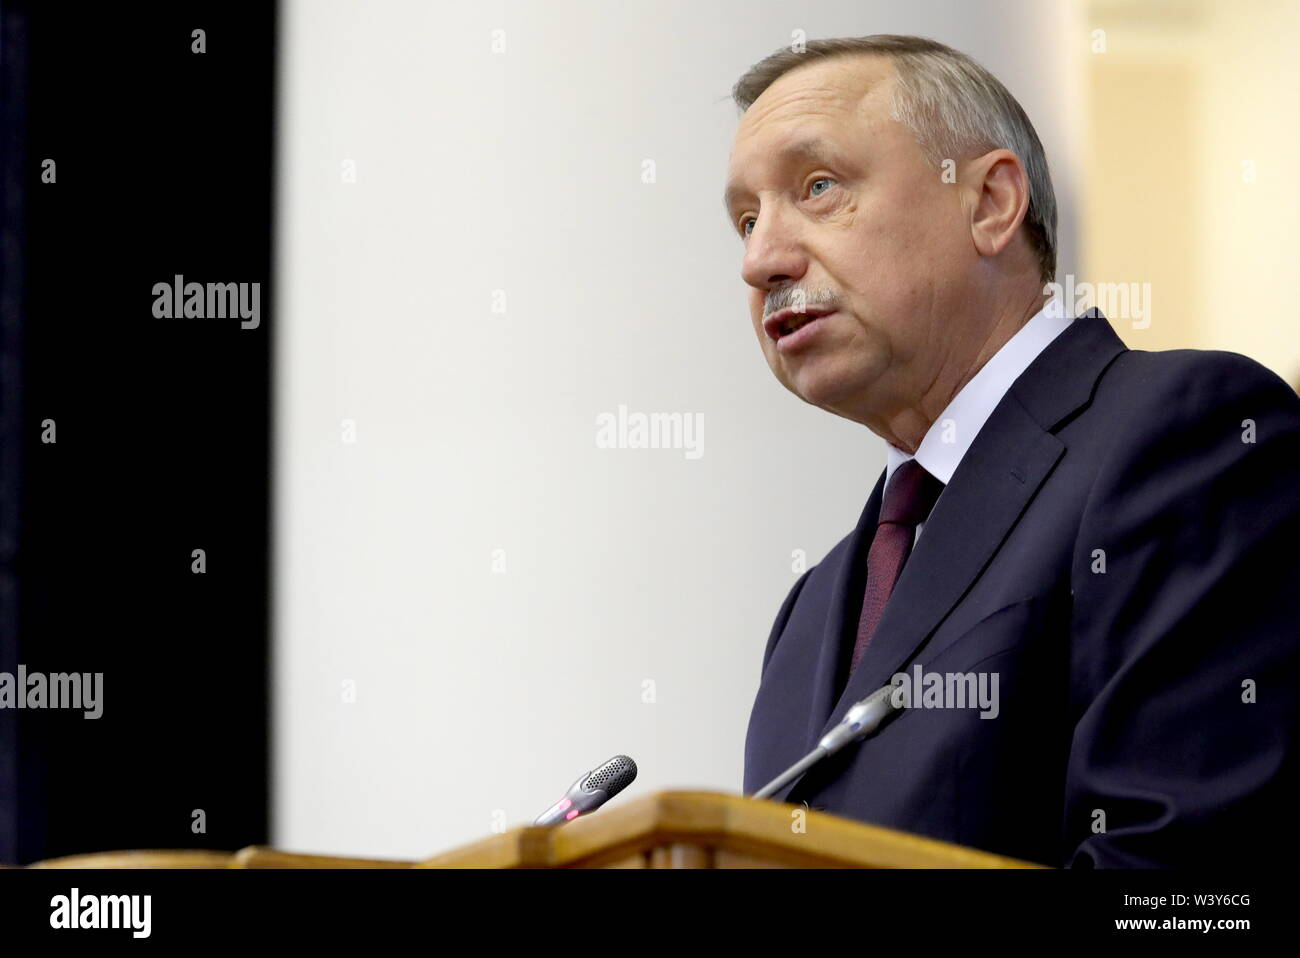 St Petersburg, Russia. 18th July, 2019. ST PETERSBURG, RUSSIA - JULY 18, 2019: Acting St Petersburg Governor Alexander Beglov addresses a plenary meeting at the 5th Belarus-Russia Forum of Regions, Tauride Palace. Mikhail Klimentyev/Russian Presidential Press and Information Office/TASS Credit: ITAR-TASS News Agency/Alamy Live News - Stock Image